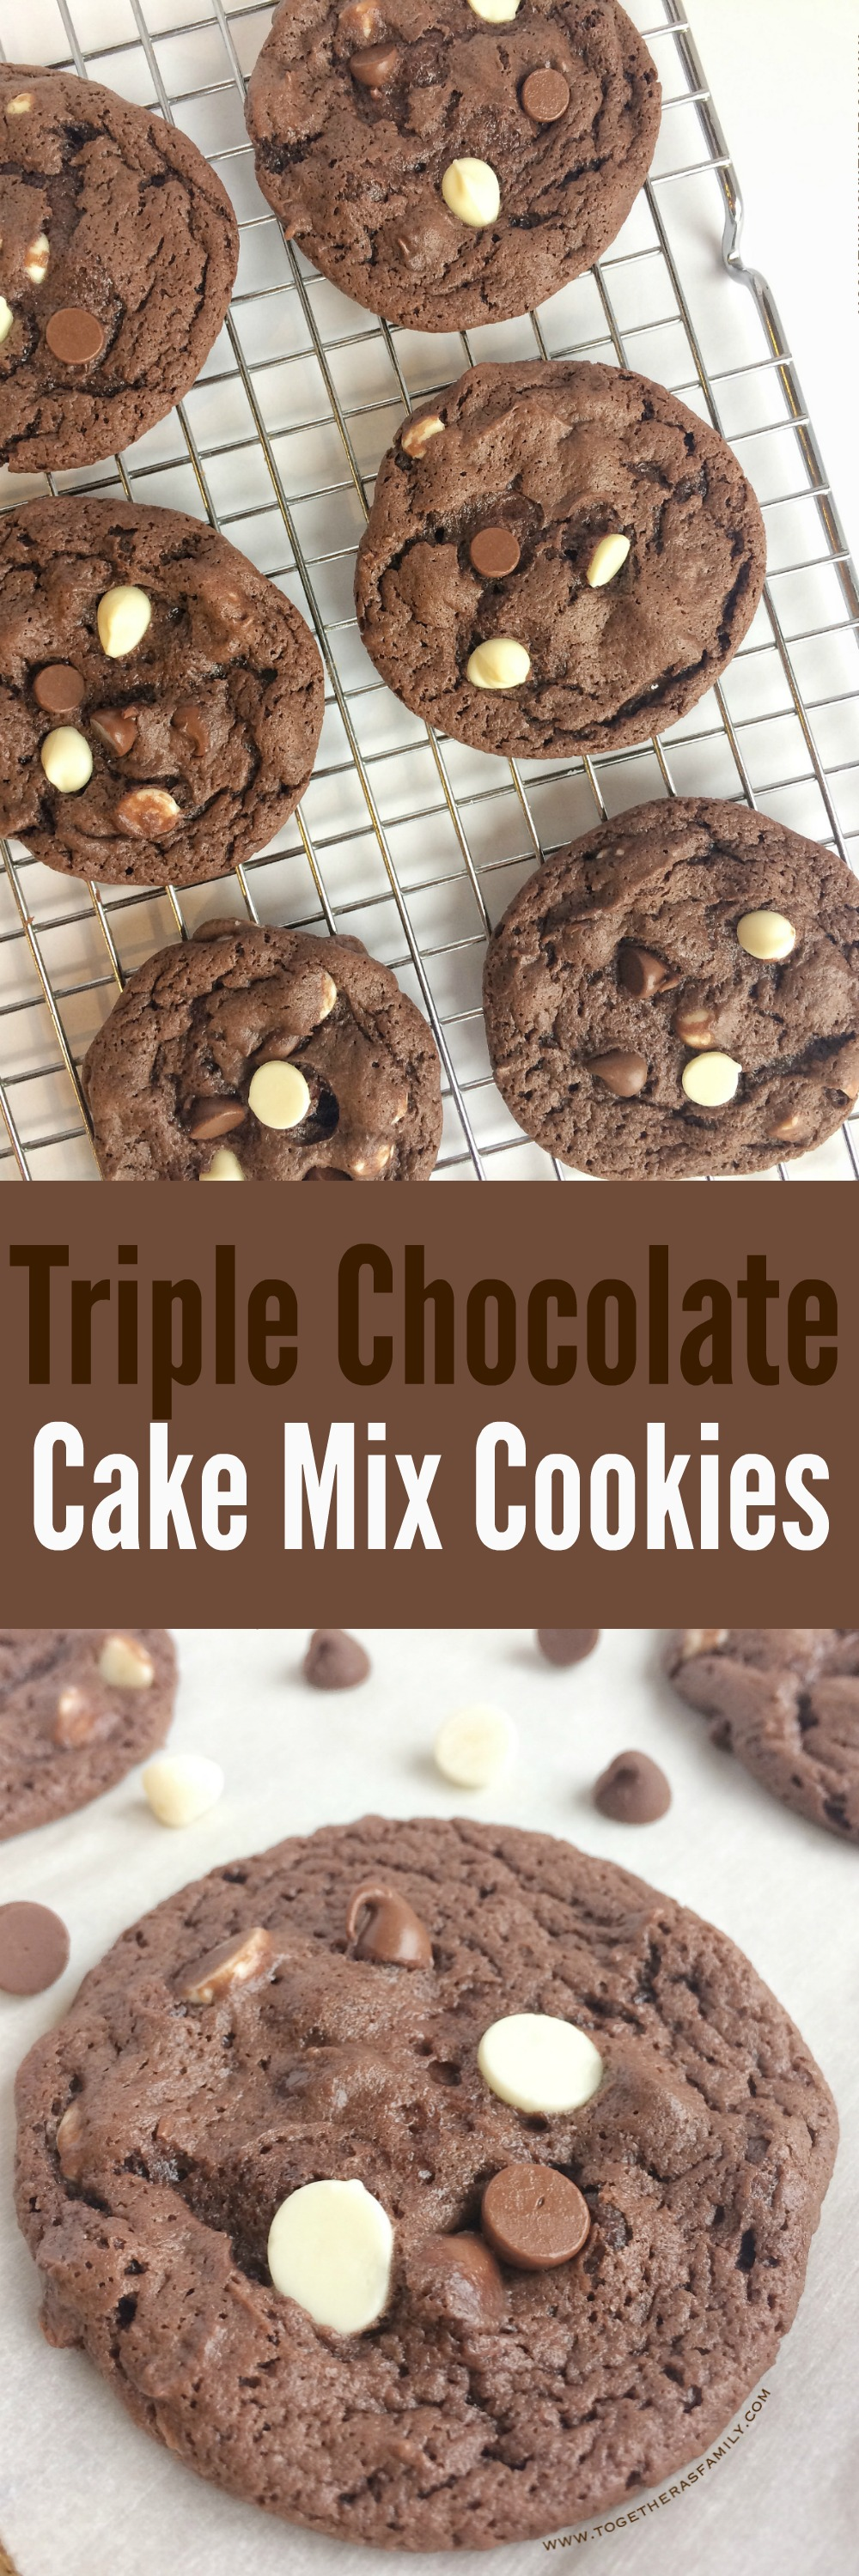 Triple Chocolate Cake Mix Cookies - Together as Family